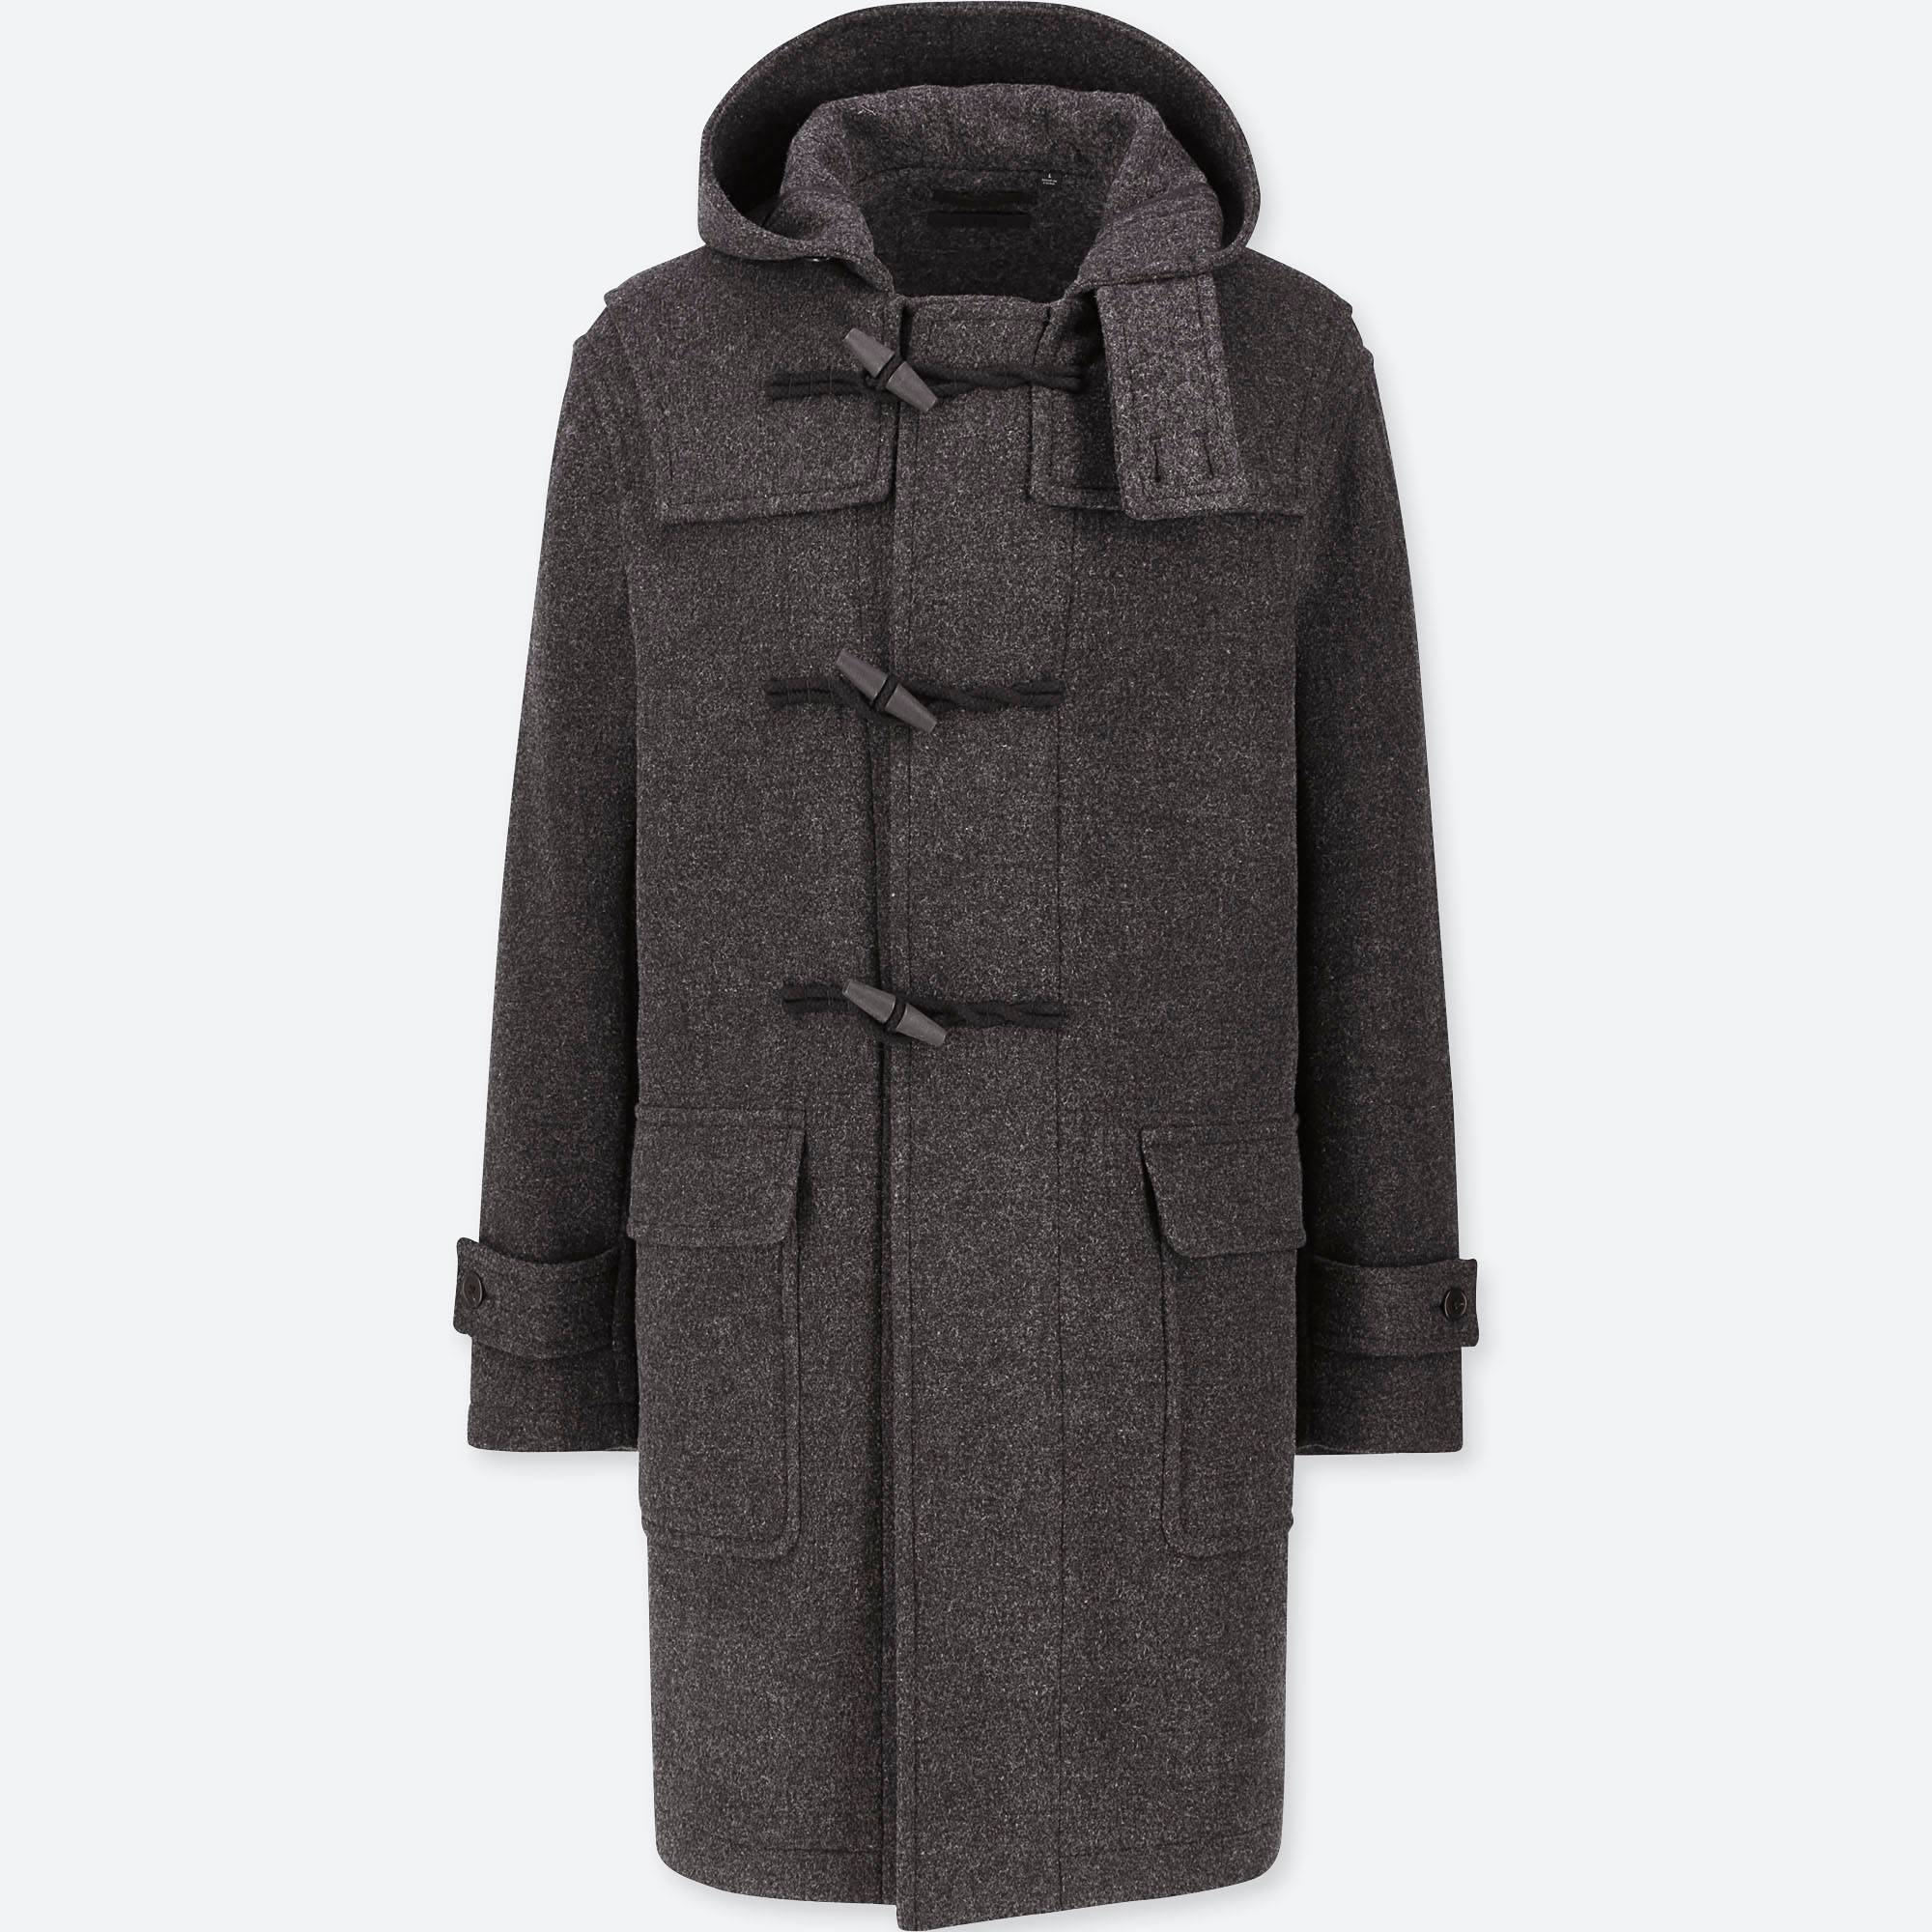 Uniqlo Wool-Blend Duffle Coat